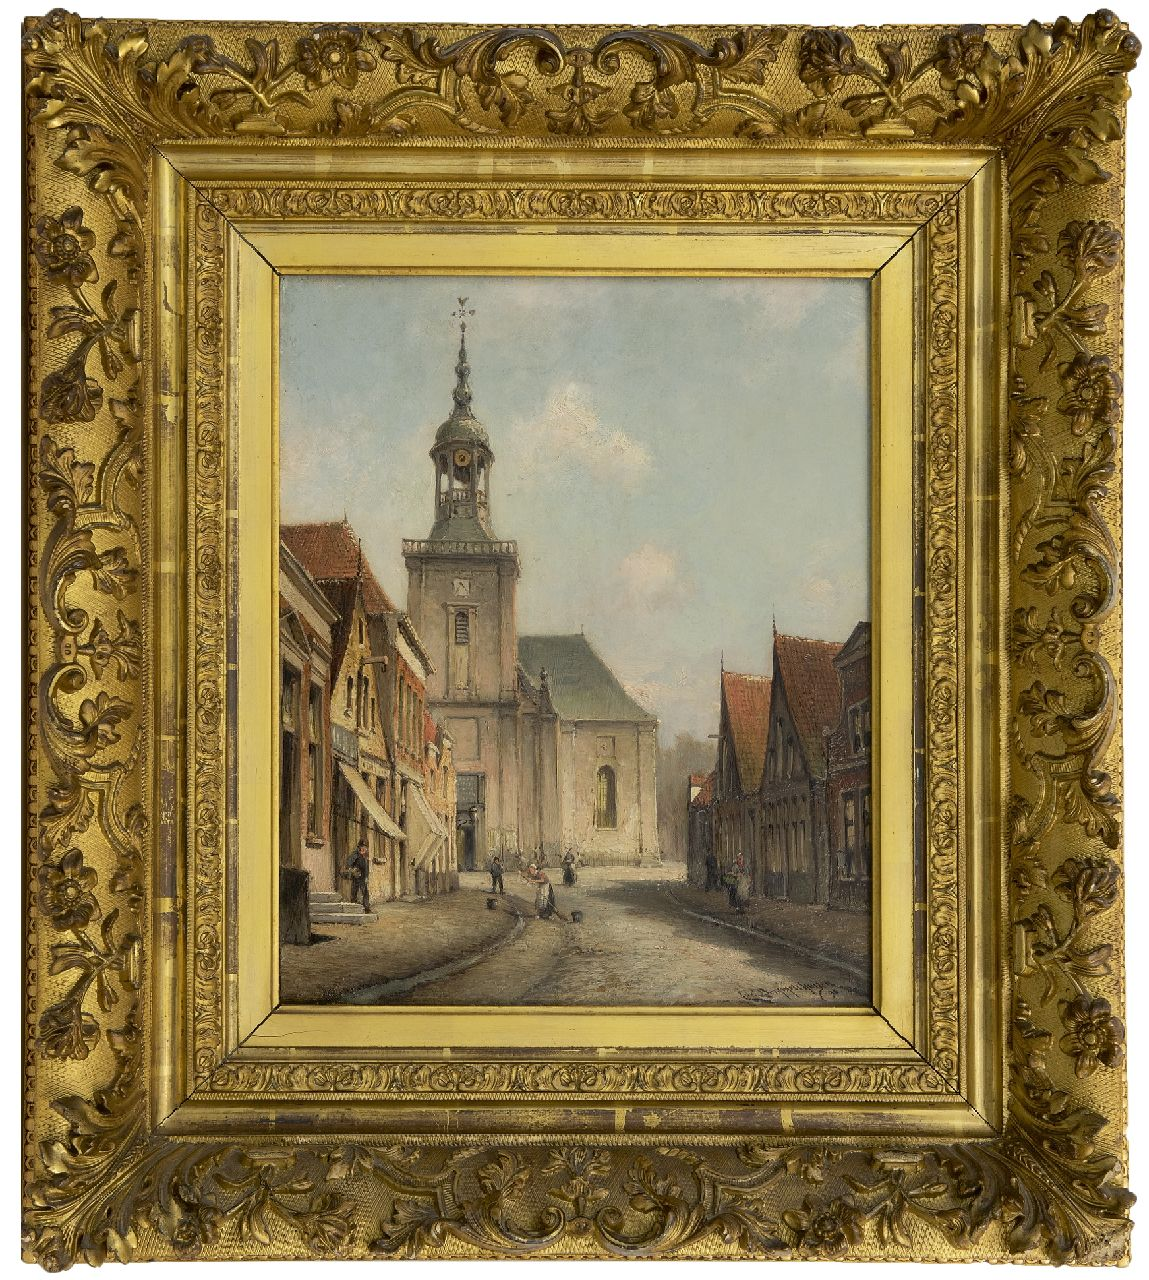 Dommelshuizen C.C.  | Cornelis Christiaan Dommelshuizen, A view of the Kerkstraat in Almelo, oil on canvas 38.6 x 31.5 cm, signed l.r. and dated '98